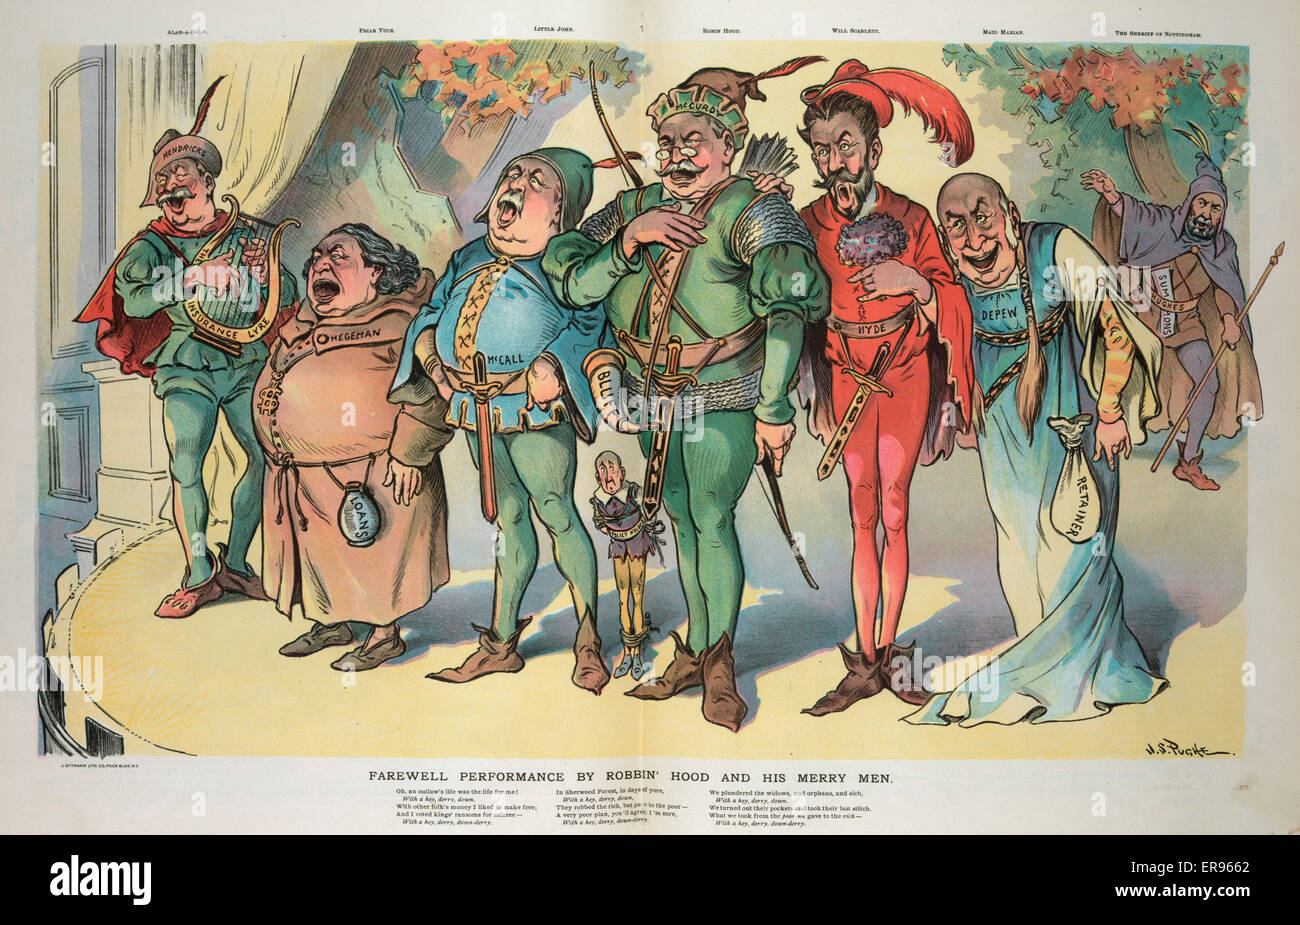 Farewell performance by Robbin' Hood and his merry men. Illustration shows the cast of a theatrical production - Stock Image